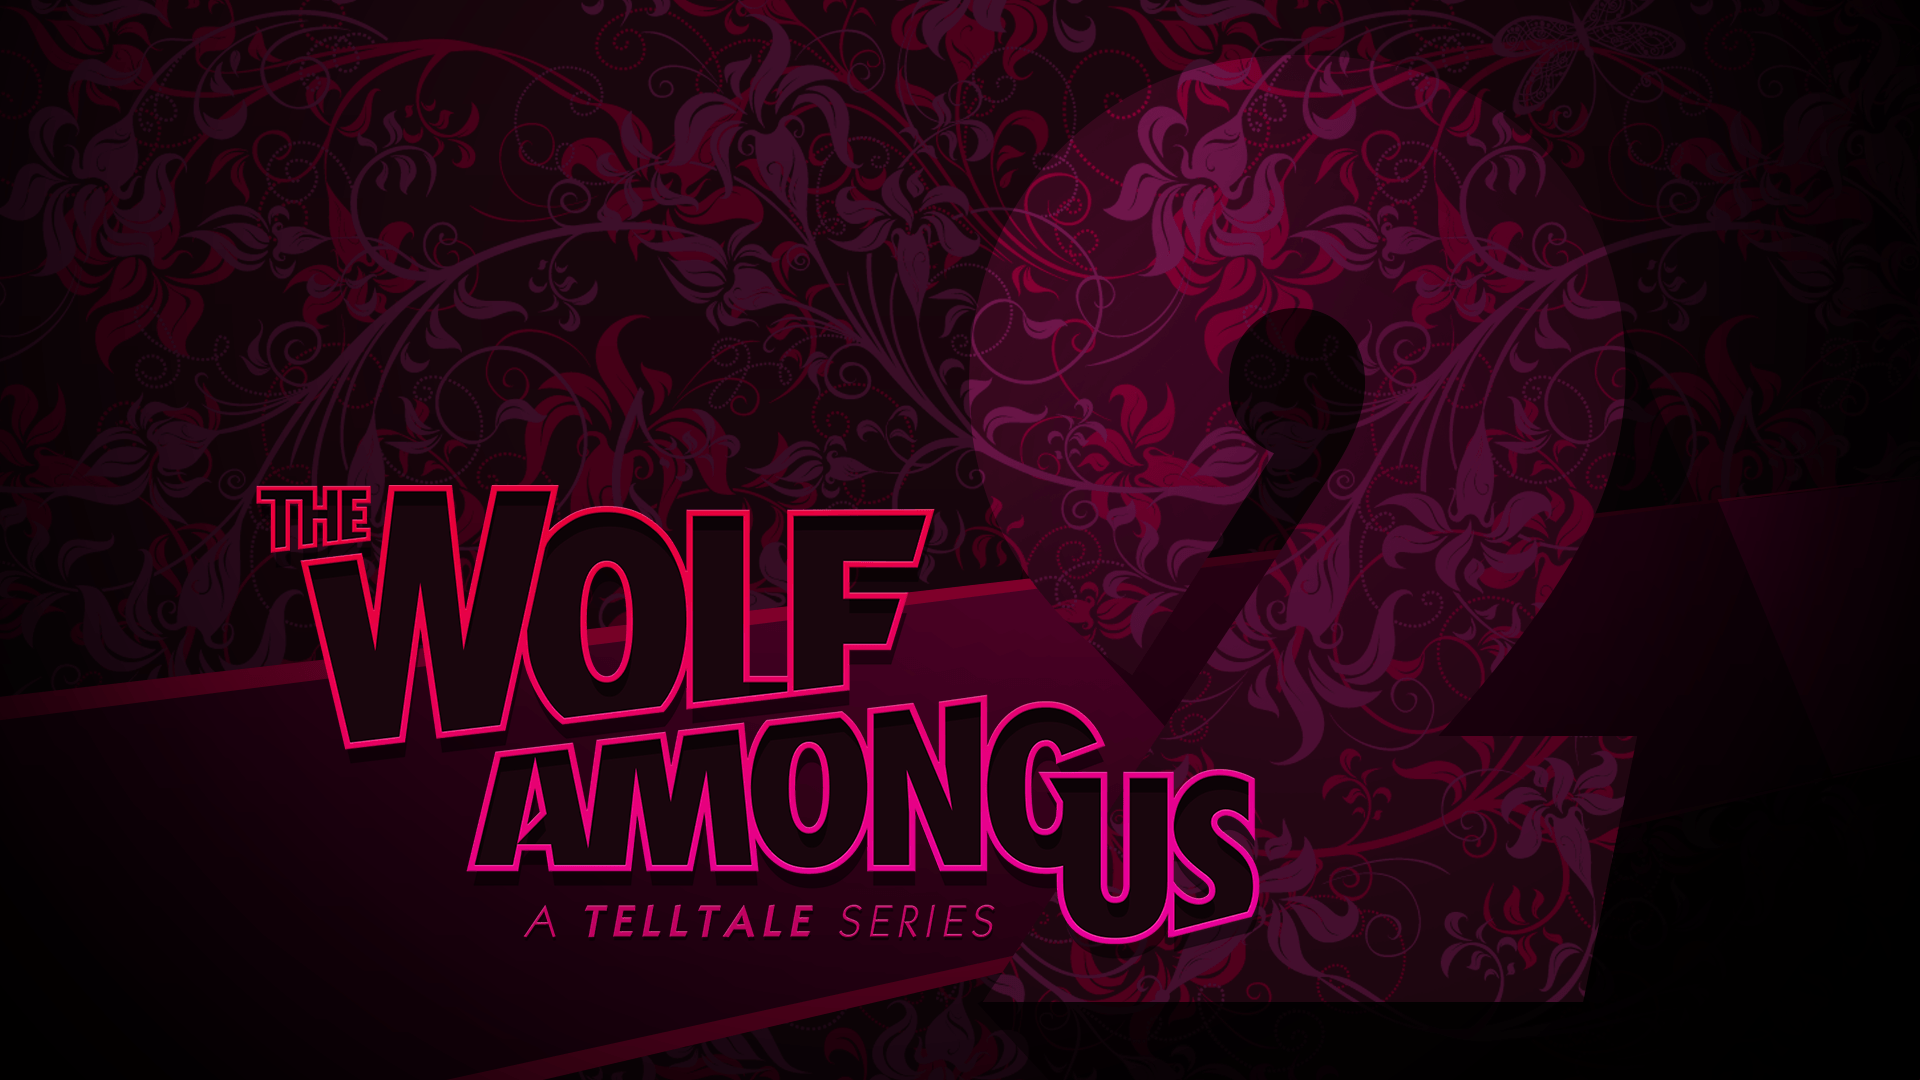 The Wolf Among Us Iphone Wallpapers Top Free The Wolf Among Us Iphone Backgrounds Wallpaperaccess